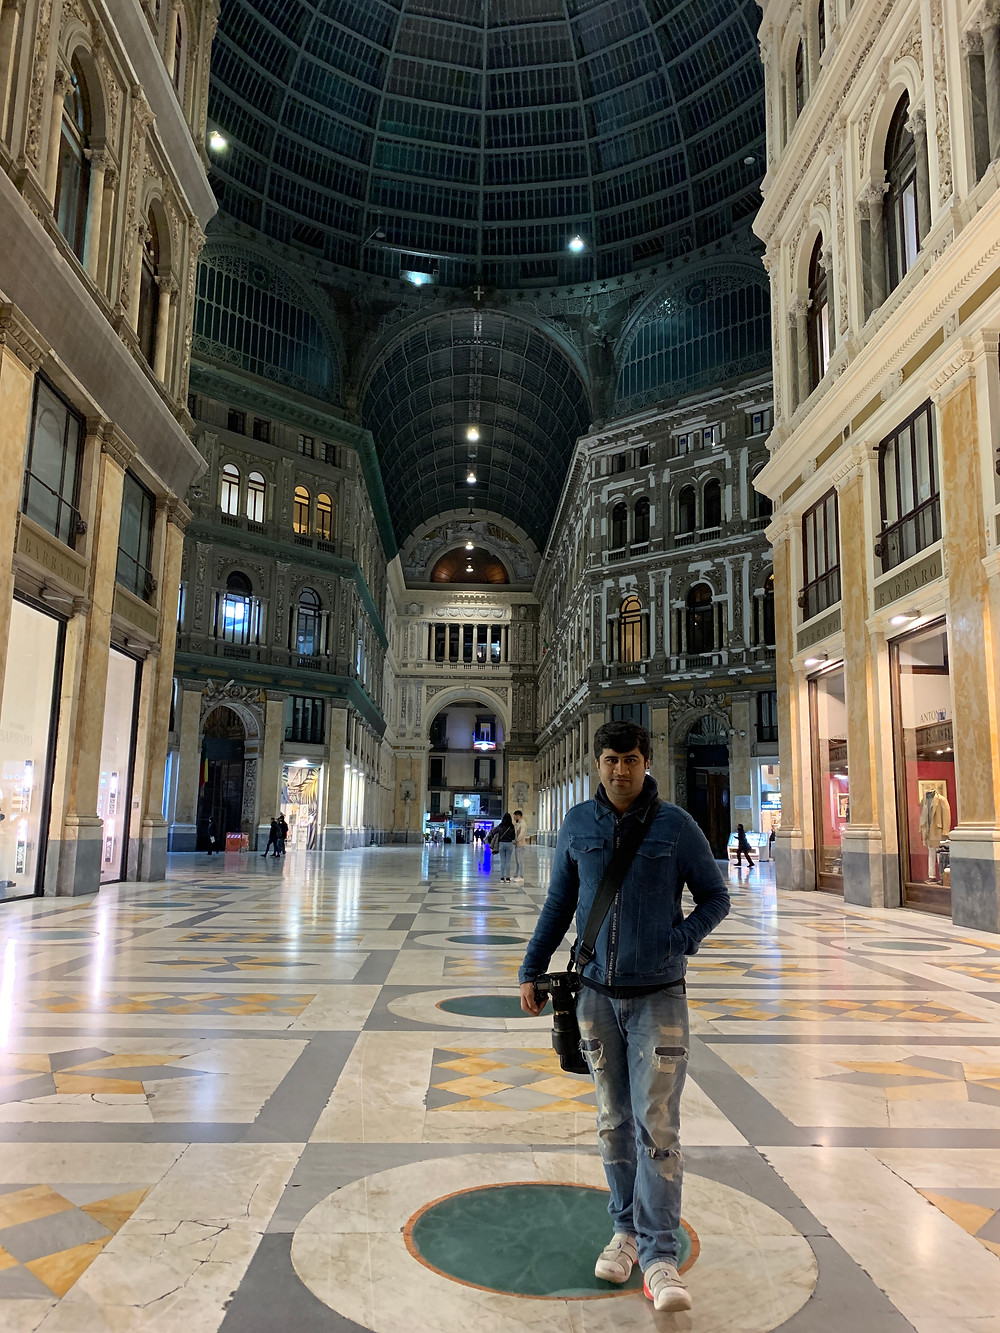 Galleria Umberto in Naples, Italy